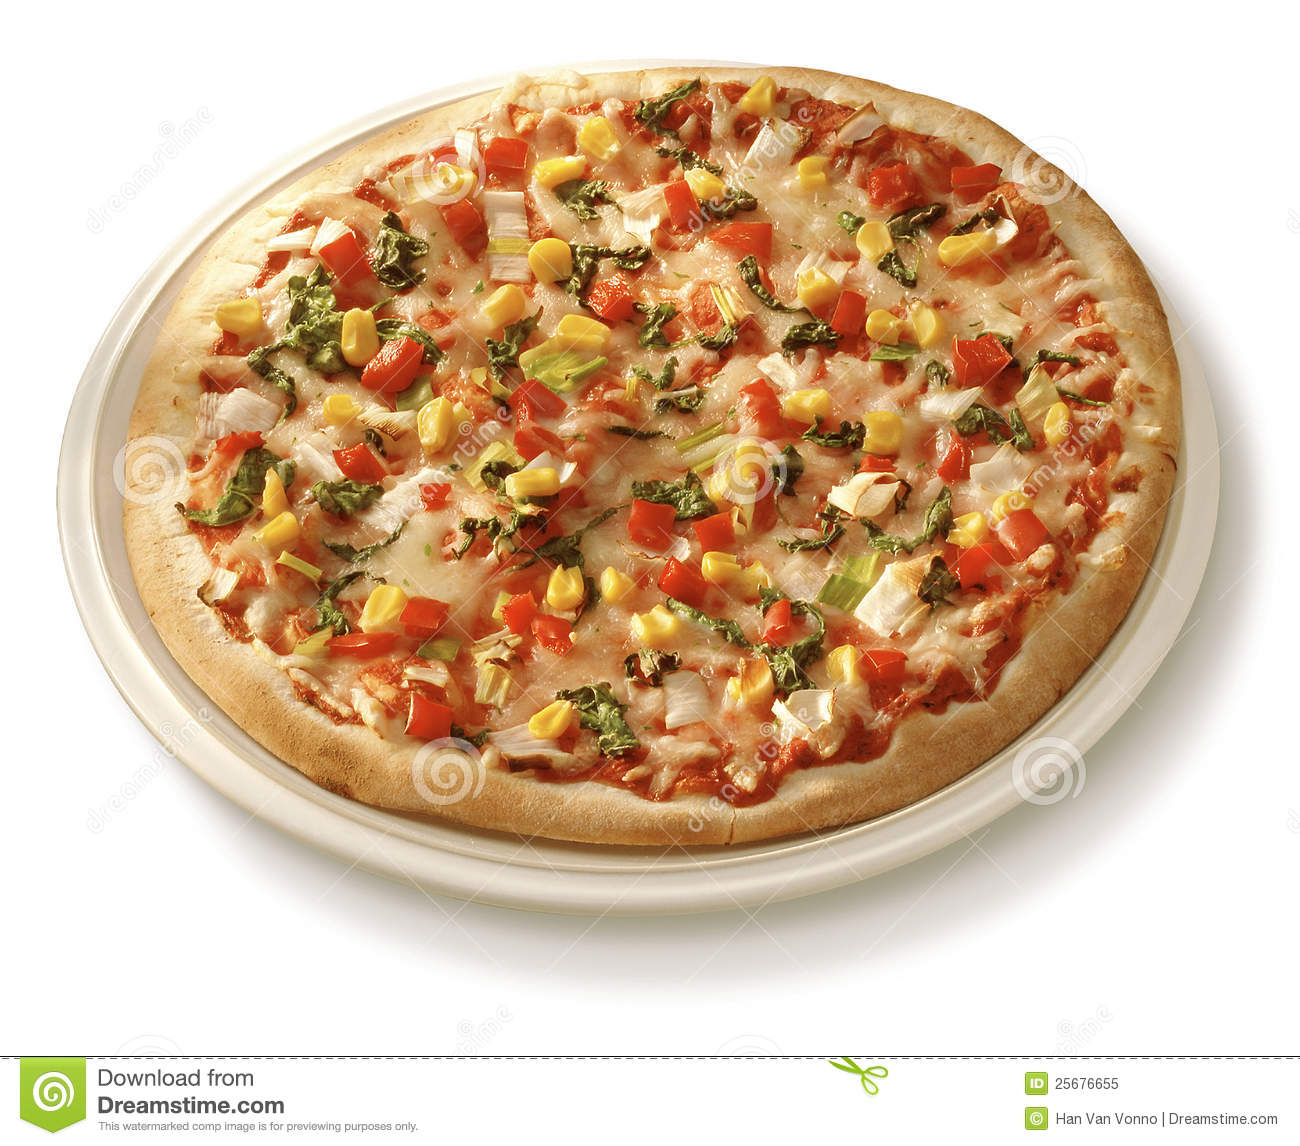 Pizza on plate royalty free stock photo image 25676655 for Table a pizza